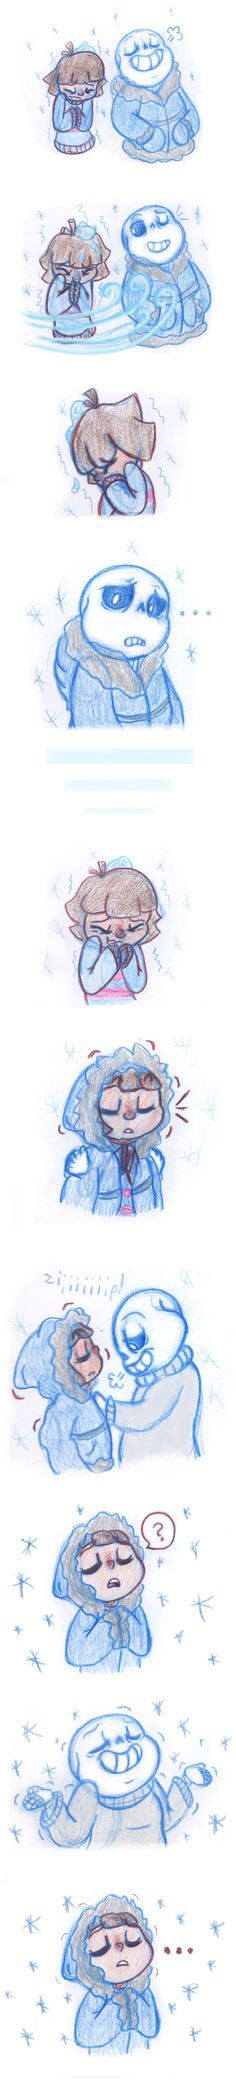 Cold Bodies, Warm Hearts Pt 1 (Undertale) by Leilani-Lily on DeviantArt